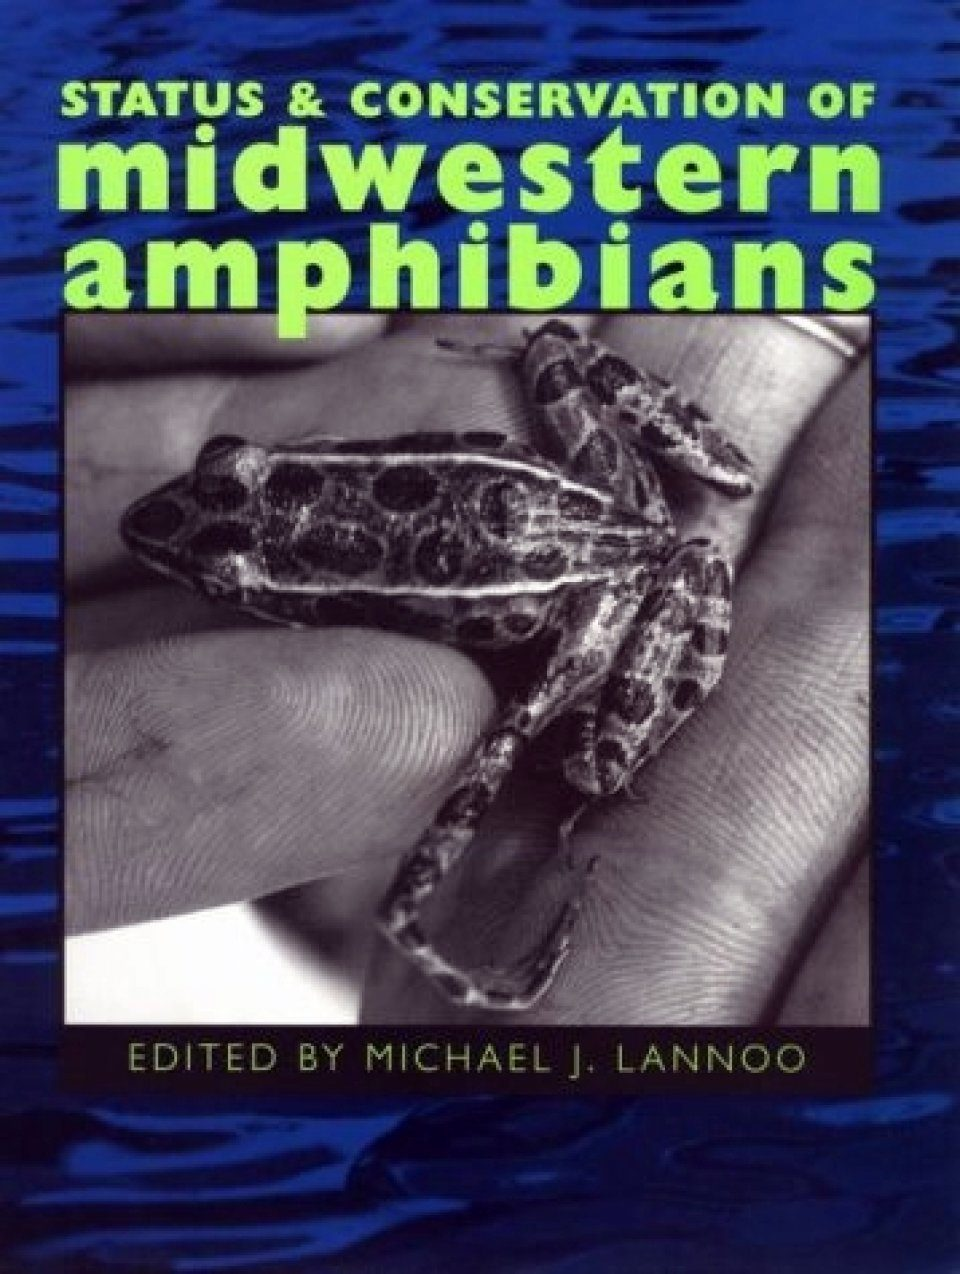 Status and Conservation of Midwestern Amphibians